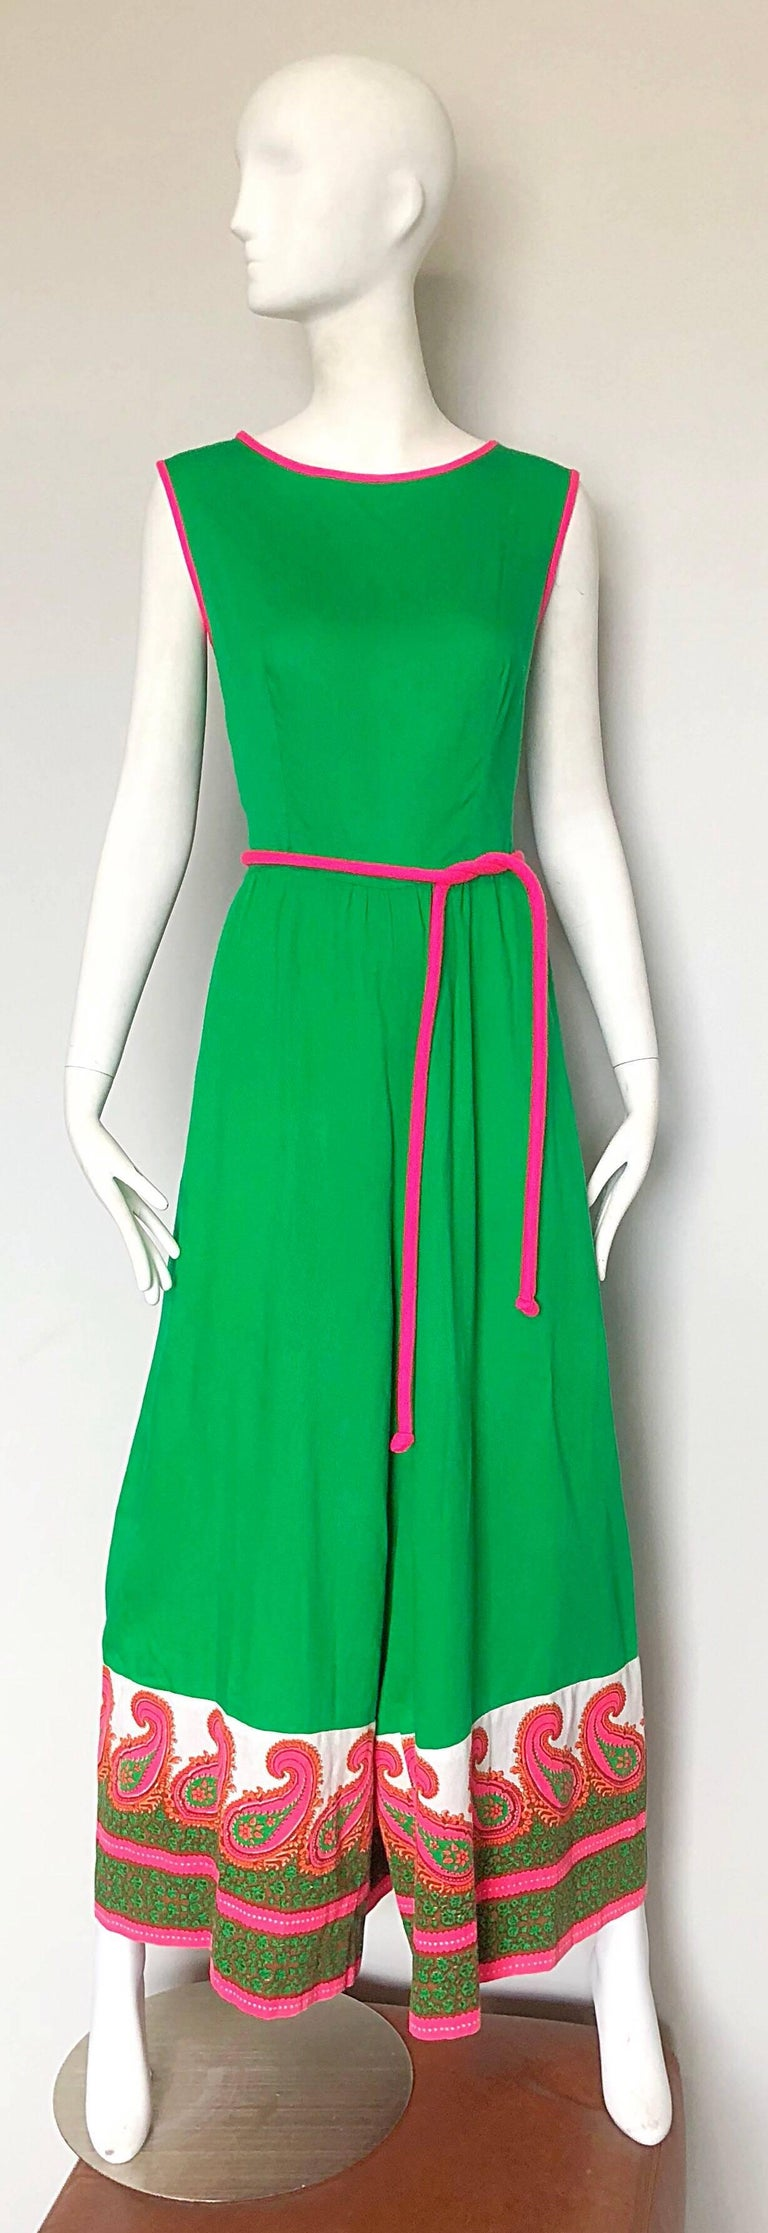 Rare 1960s ALFRED SHAHEEN kelly green and hot pink  screen printed wide leg jumpsuit! Features shamrock kelly green with hot pink trim around the neck and sleeves, with a matching detachable tie belt. Hot pink, white and green paisley screen print